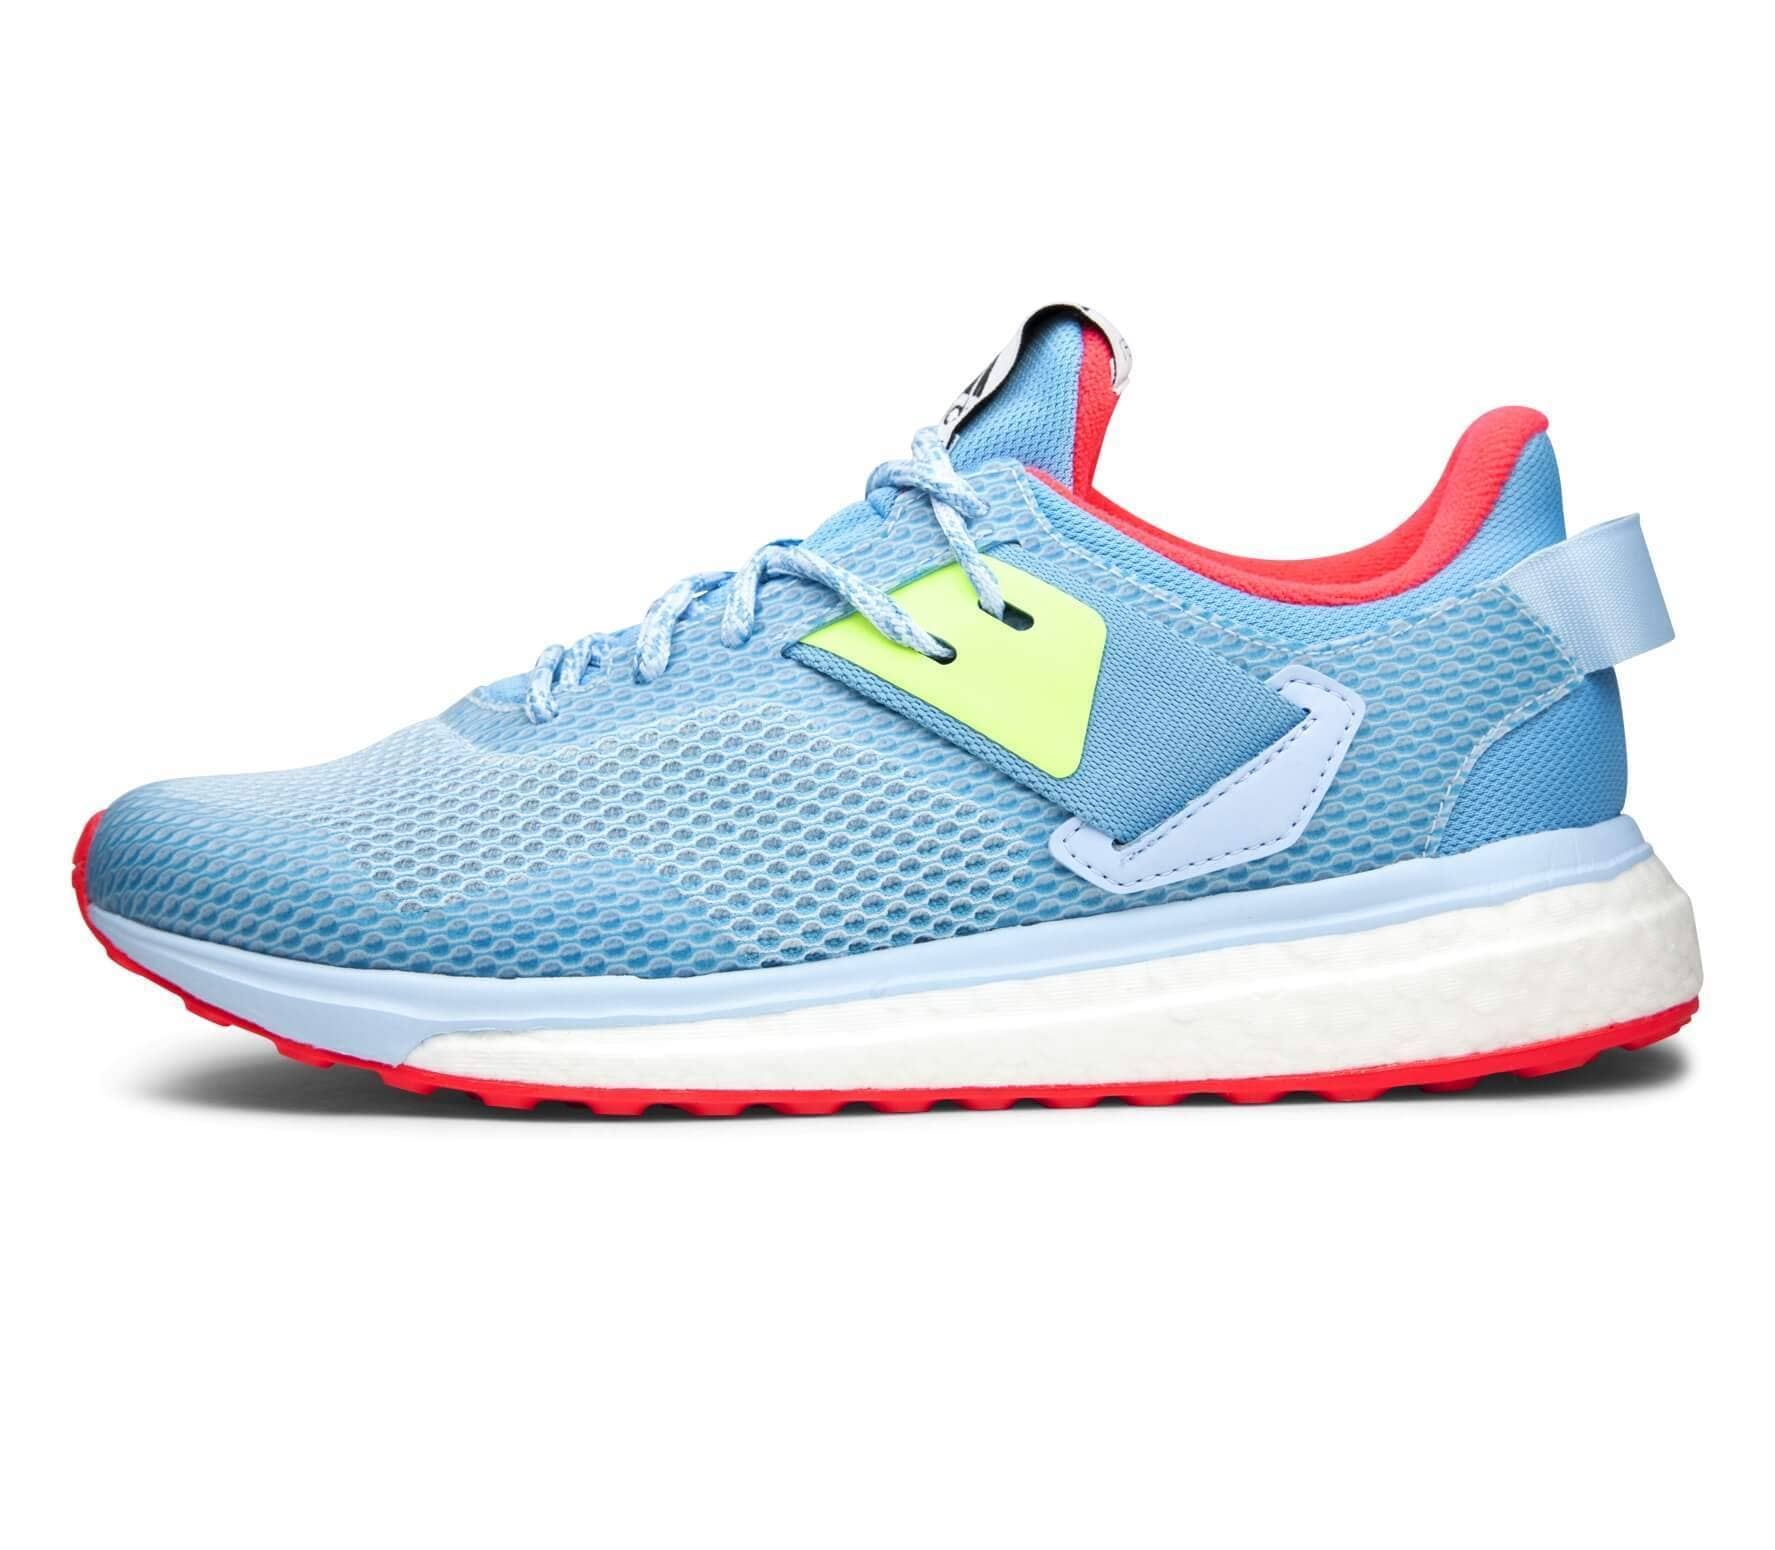 d033f2b38c Adidas - Response 3 women s running shoes (light blue red) - buy it ...